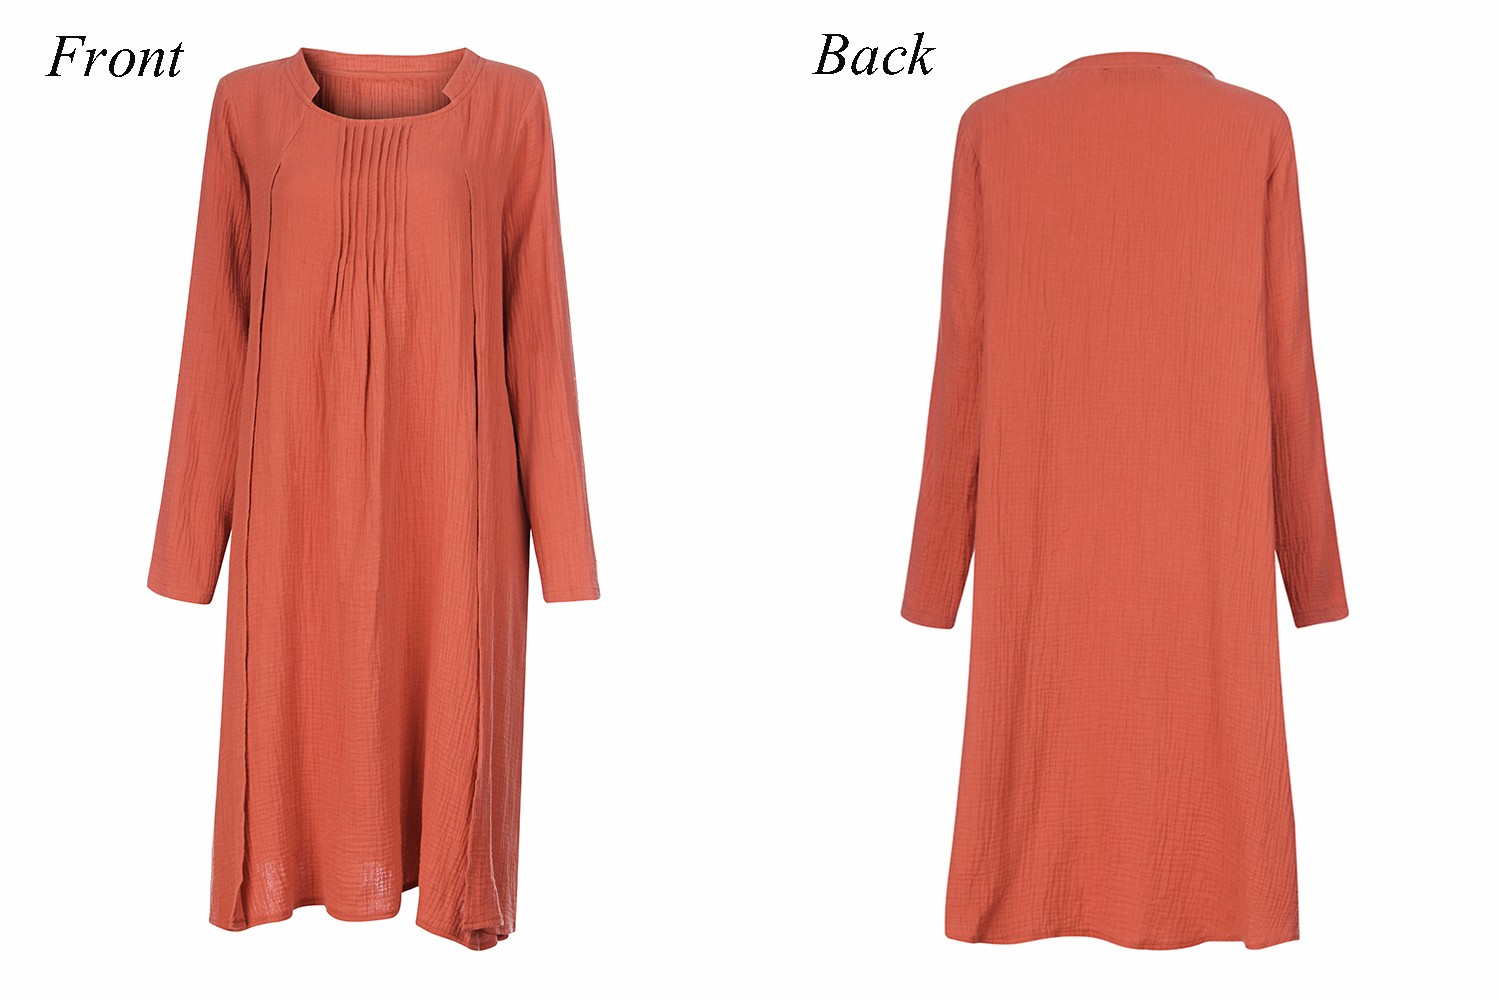 O-Newe L-5XL Casual Women Pure Color Long Sleeve Ruffled Dress